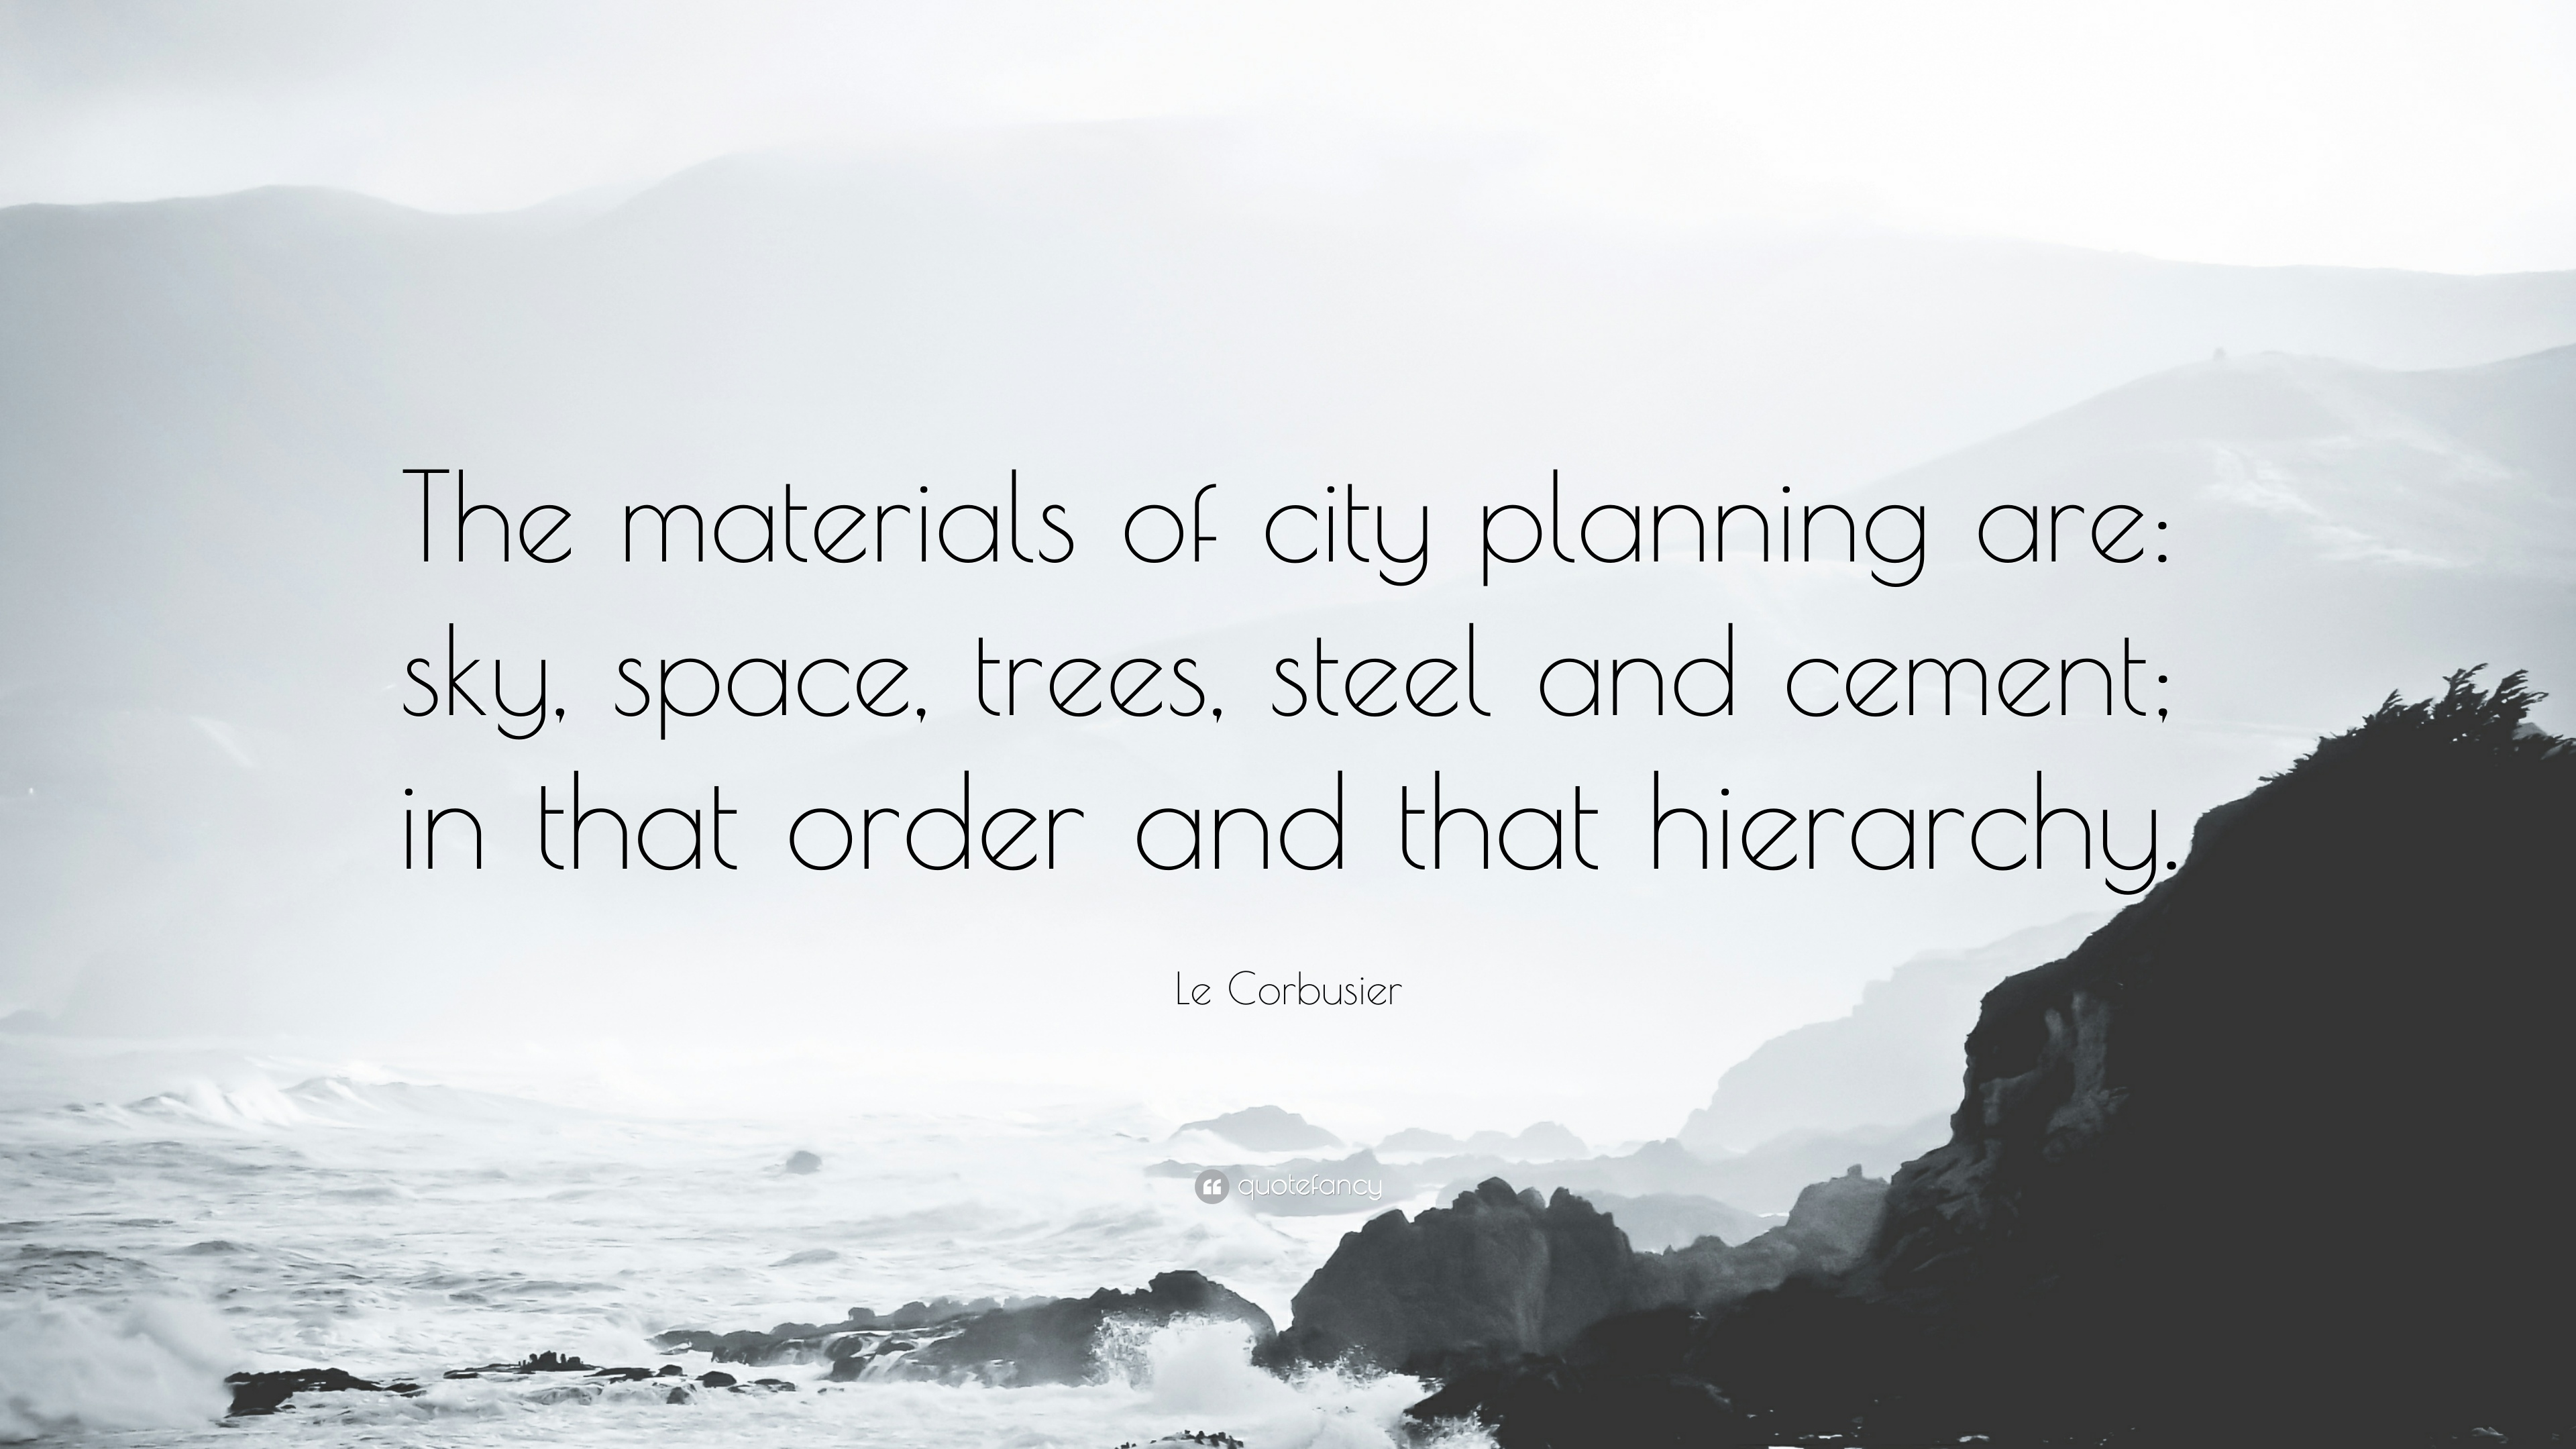 Le Corbusier Quote The Materials Of City Planning Are Sky Space Trees Steel And Cement In That Order And That Hierarchy 10 Wallpapers Quotefancy